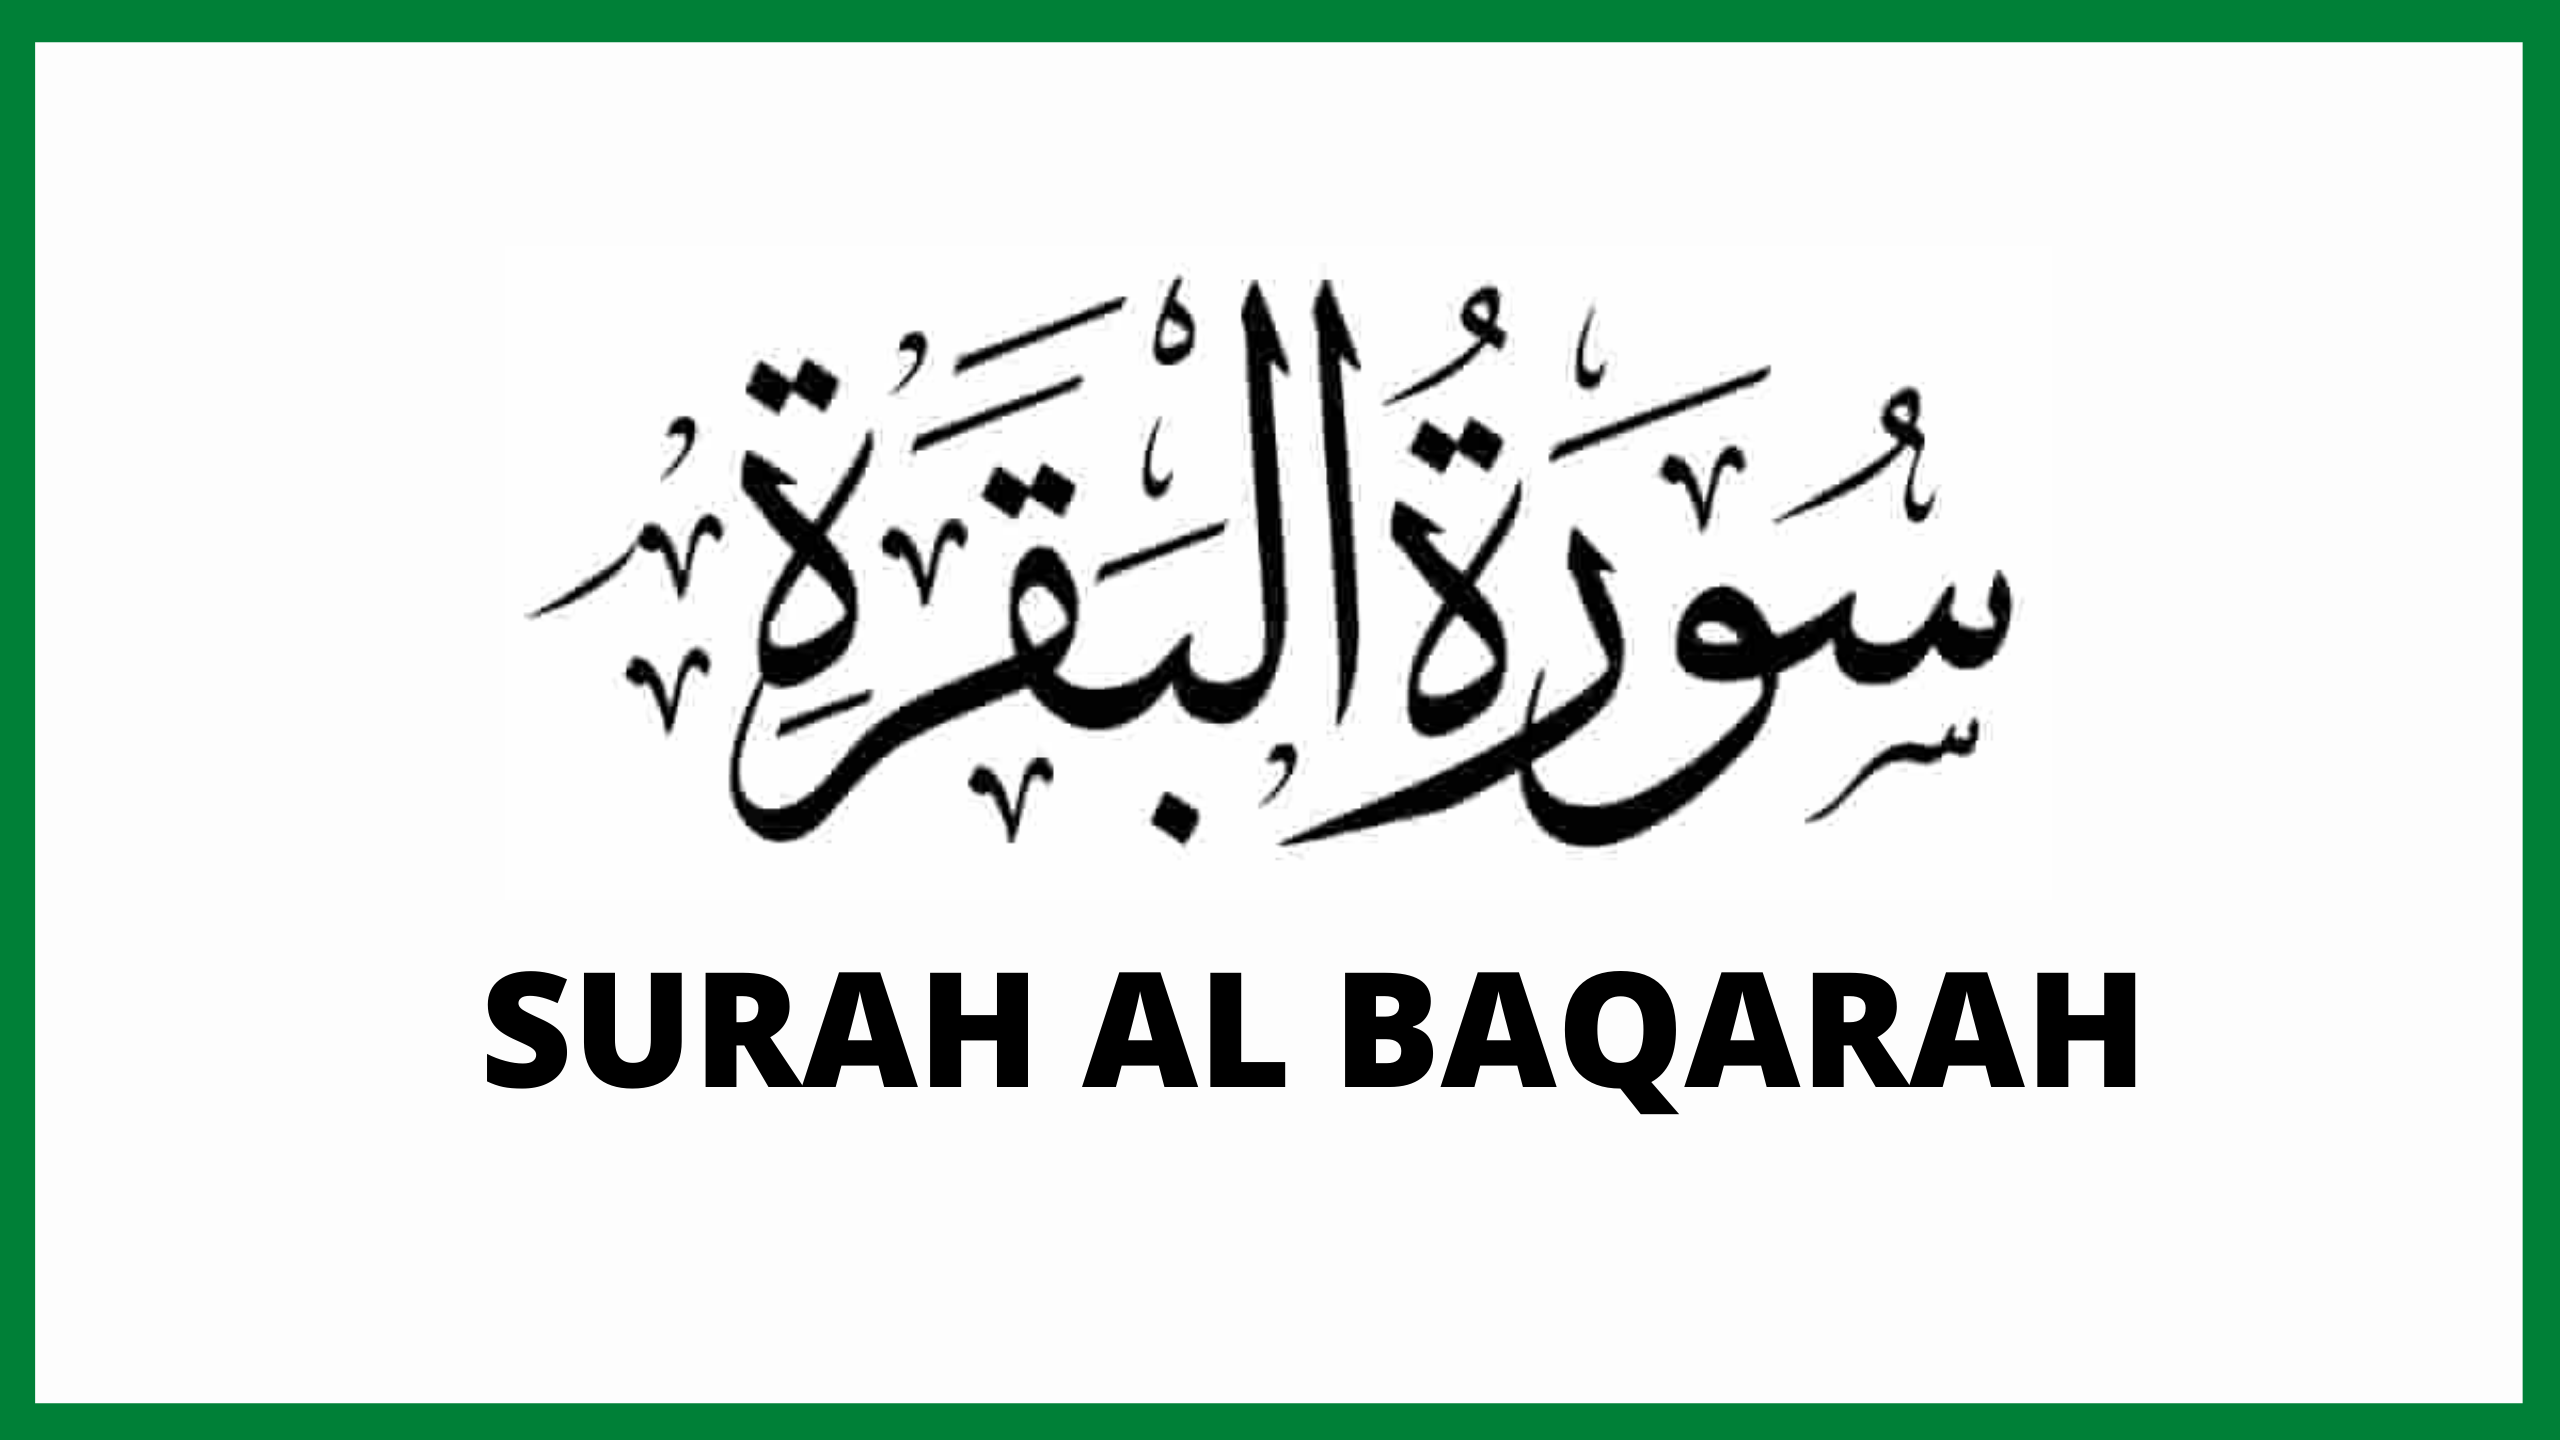 You are currently viewing Sourate AL-BAQARAH / البقرة en arabe | Sourate 2